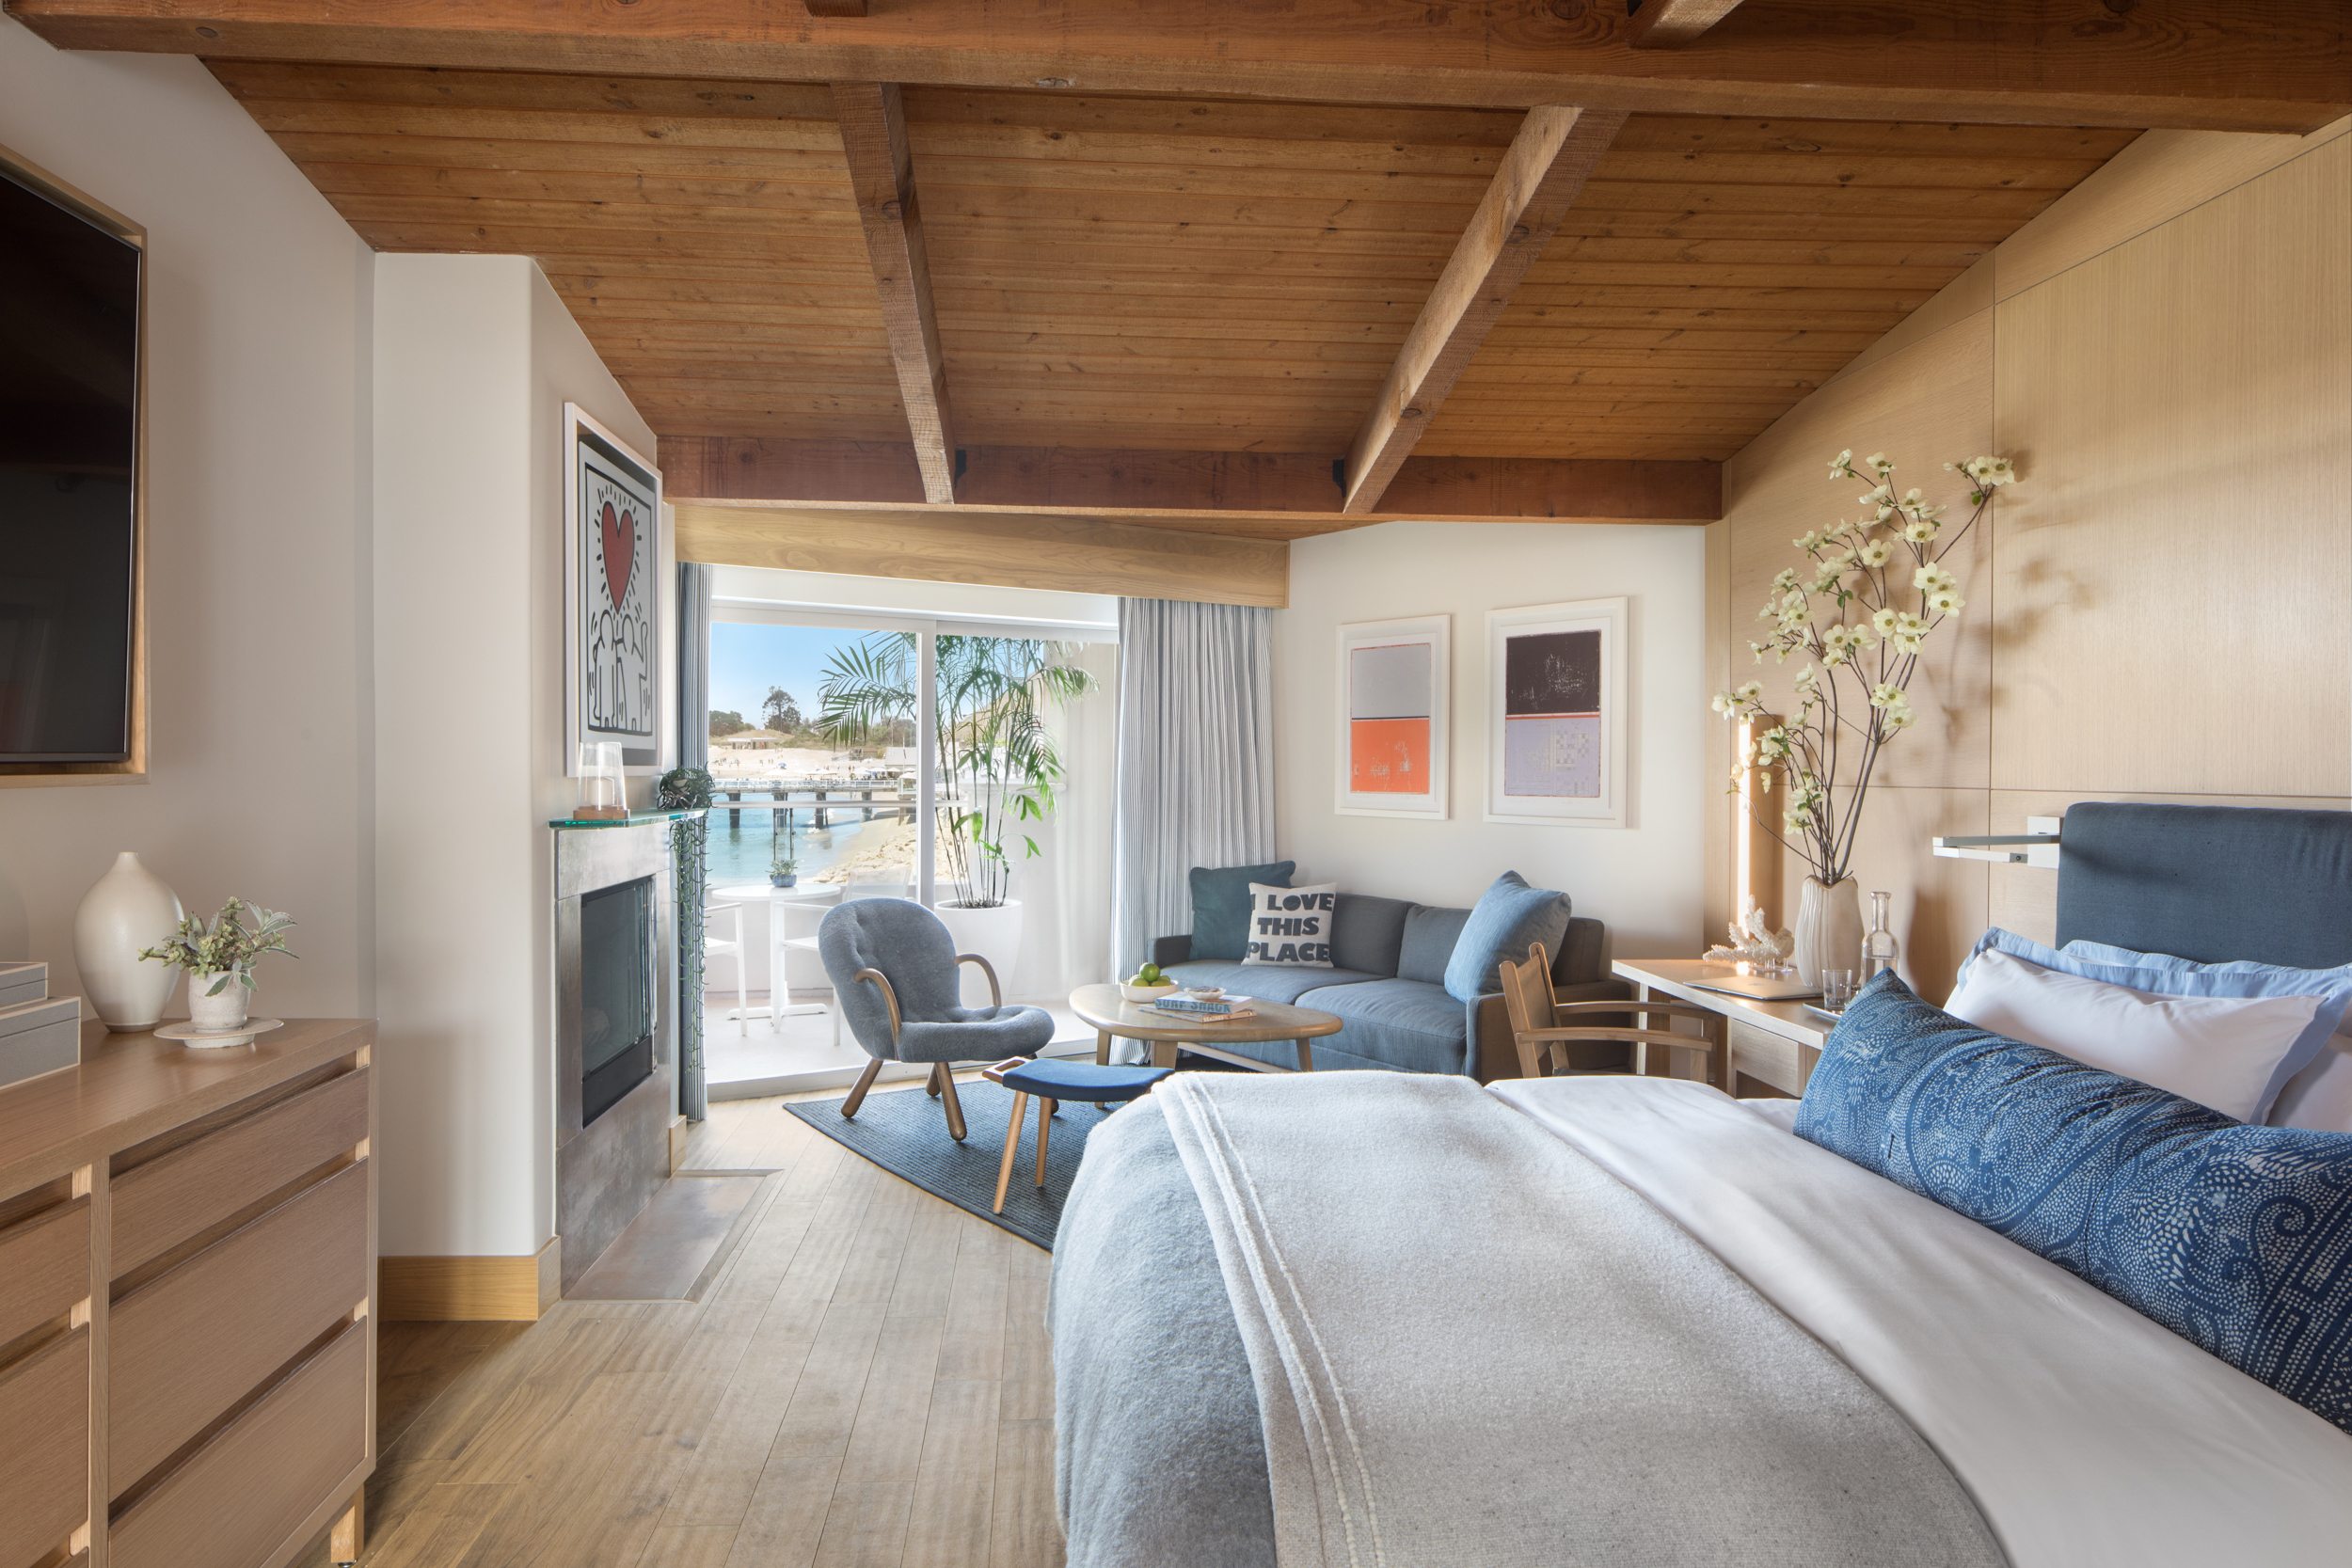 Malibu Hotel - Luxury Beach Resort | Malibu Beach Inn